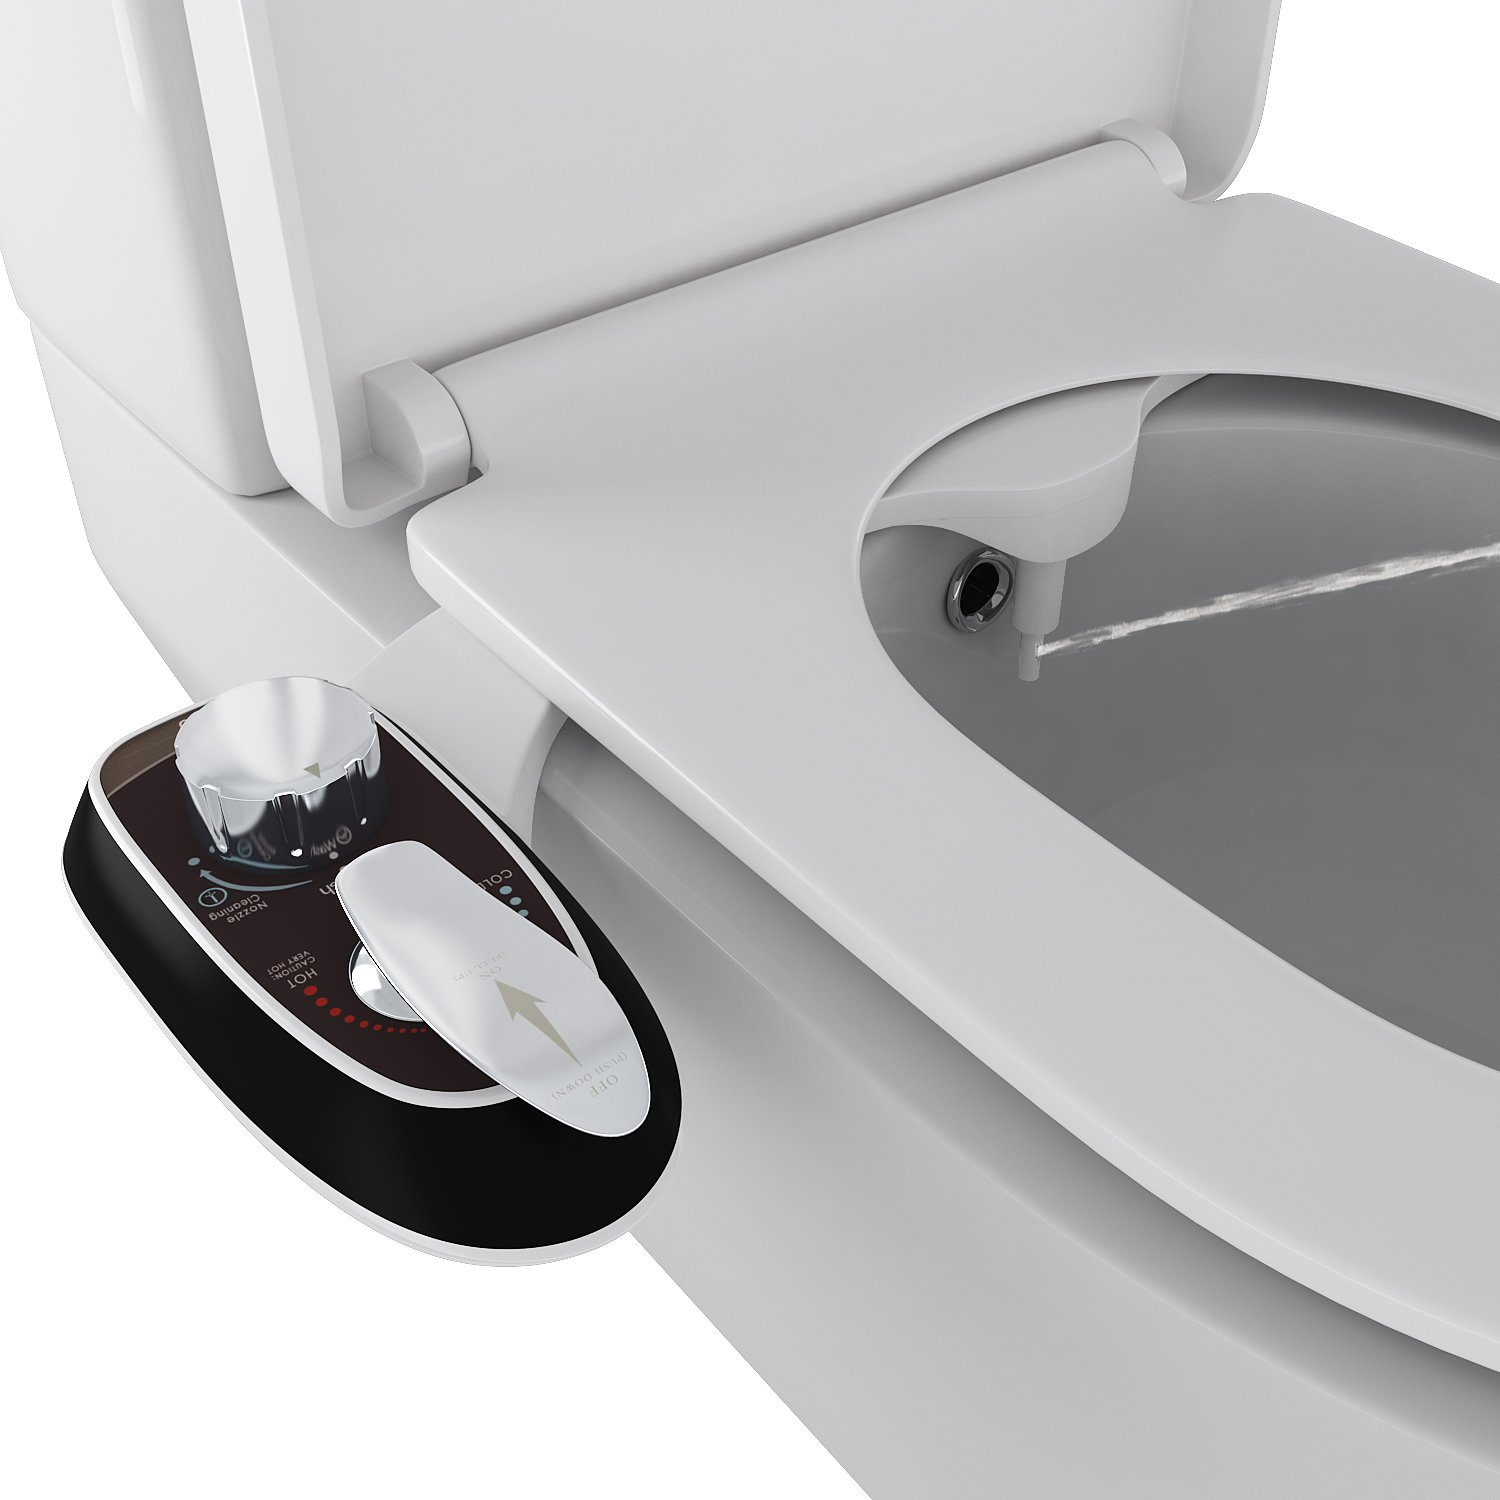 BATHWA Toilet Seat Bidet Toilet Seat Attachment Cold Water Bidet Cleaning Nozzle